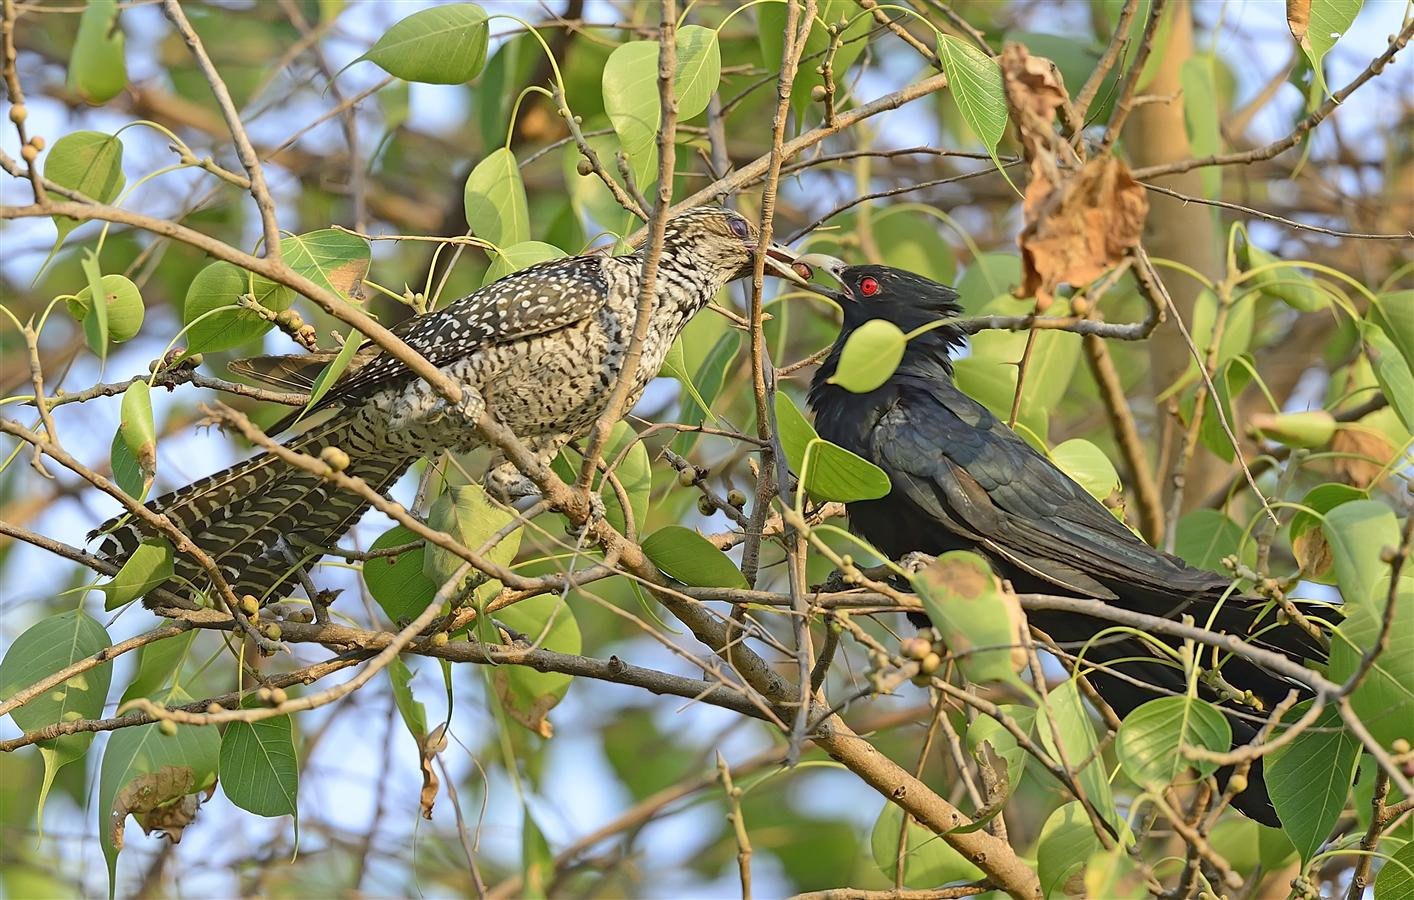 'Indian Koels in Courtship' - They are quite common in the President's Estate, but are heard more often than they are seen.